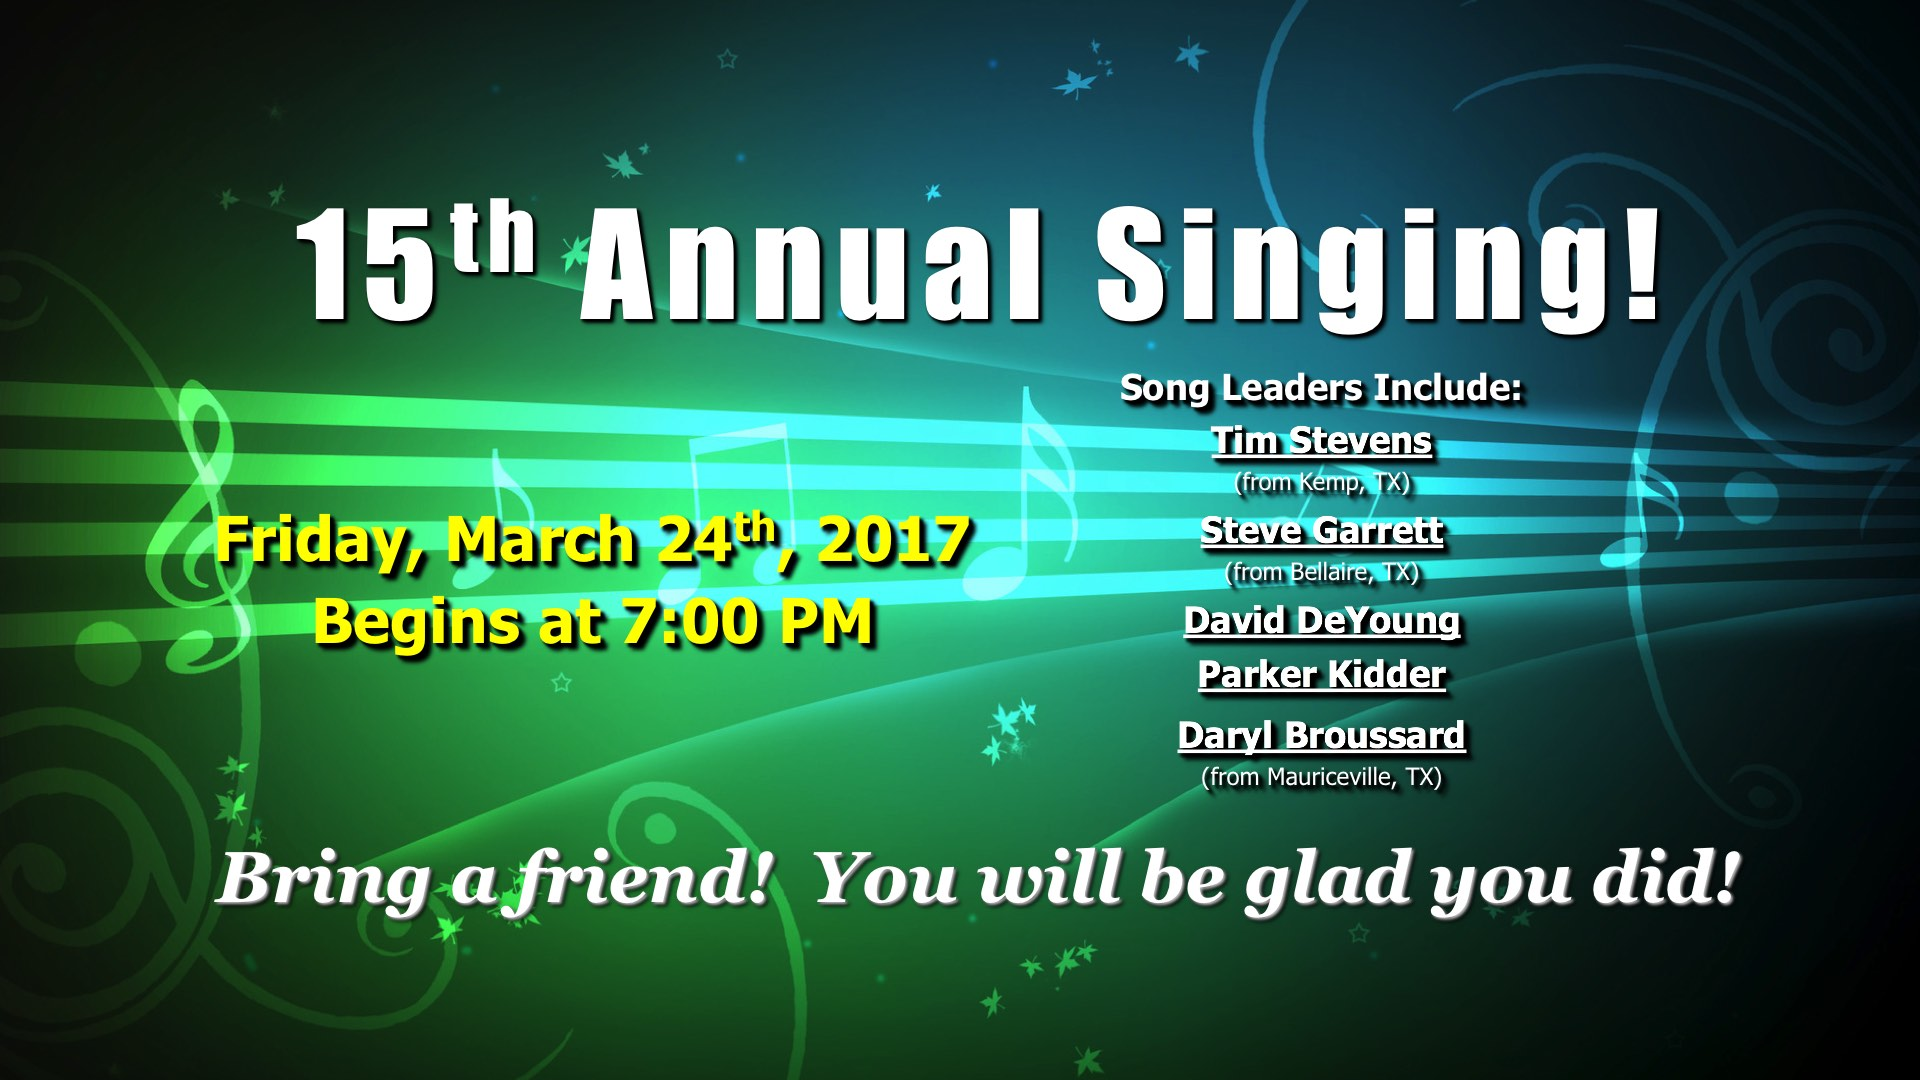 15th Annual Singing!